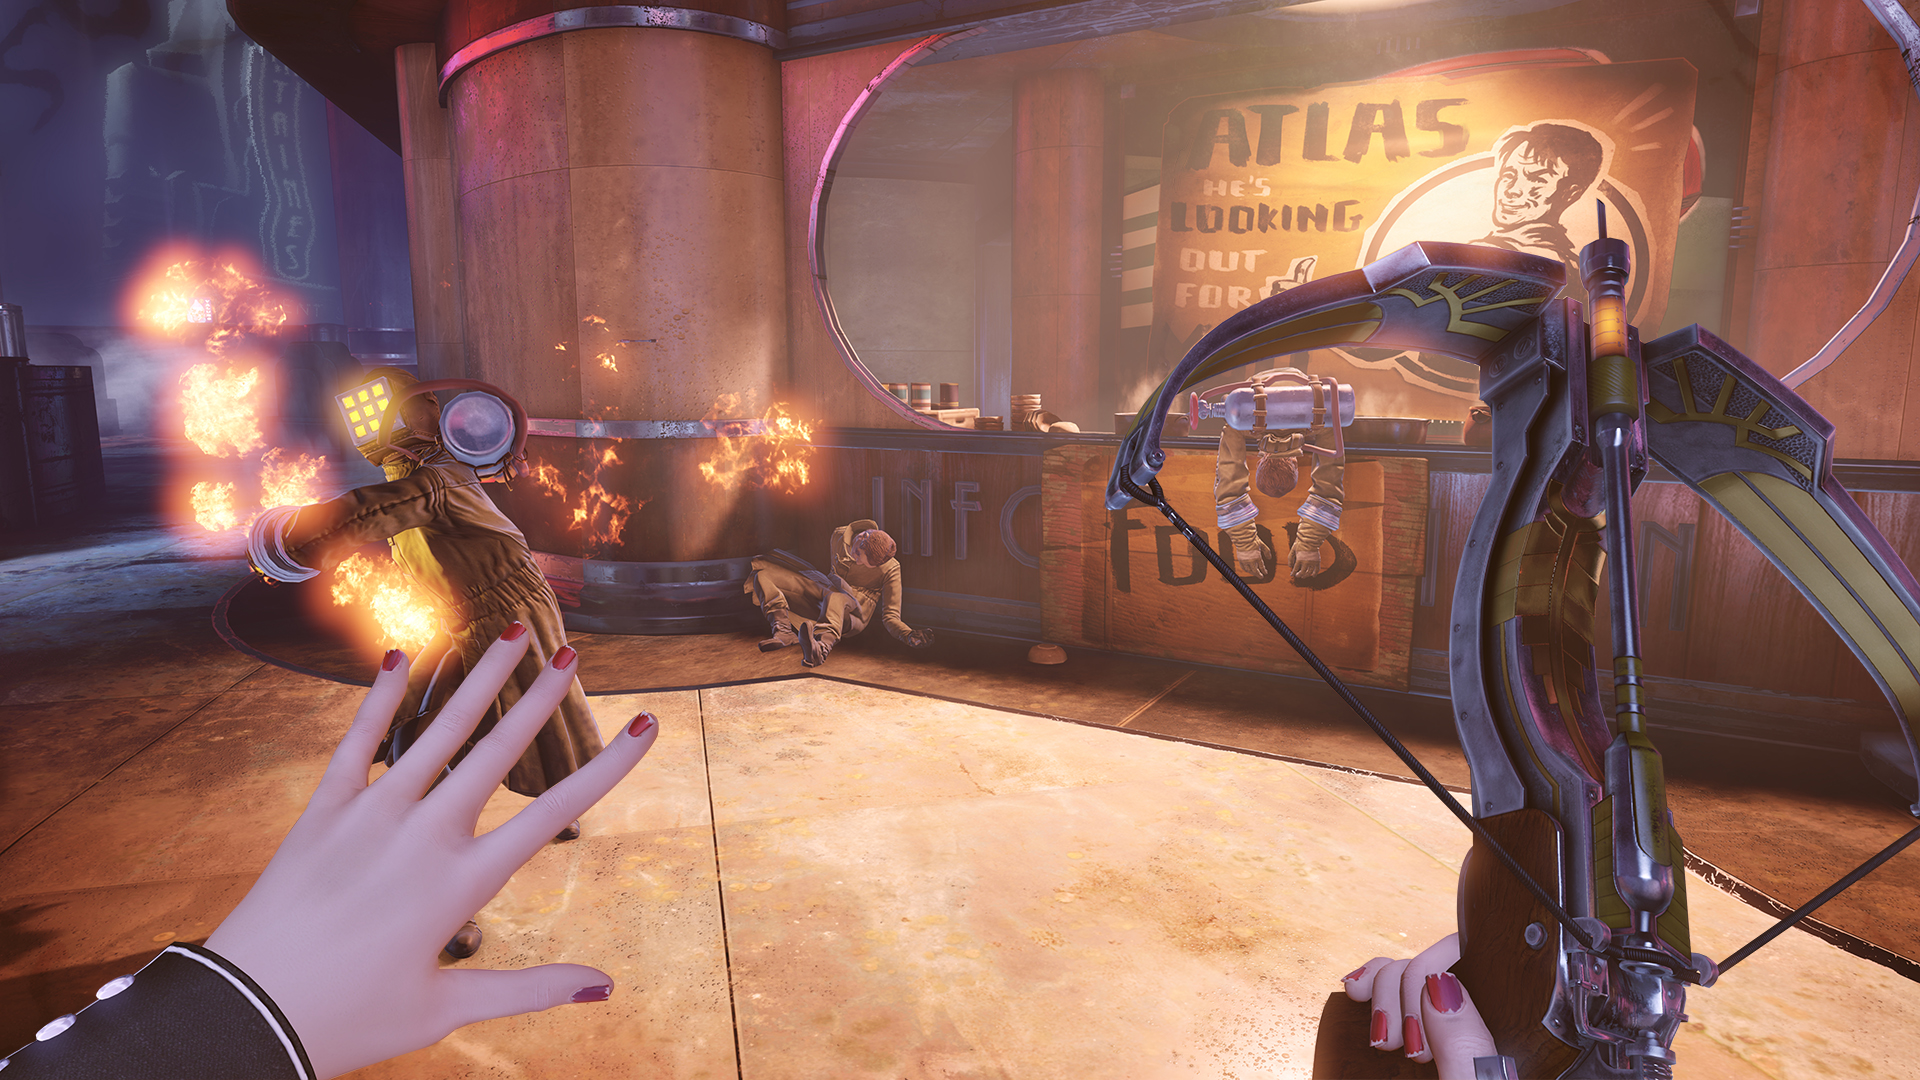 burial at sea ep2 pic 1